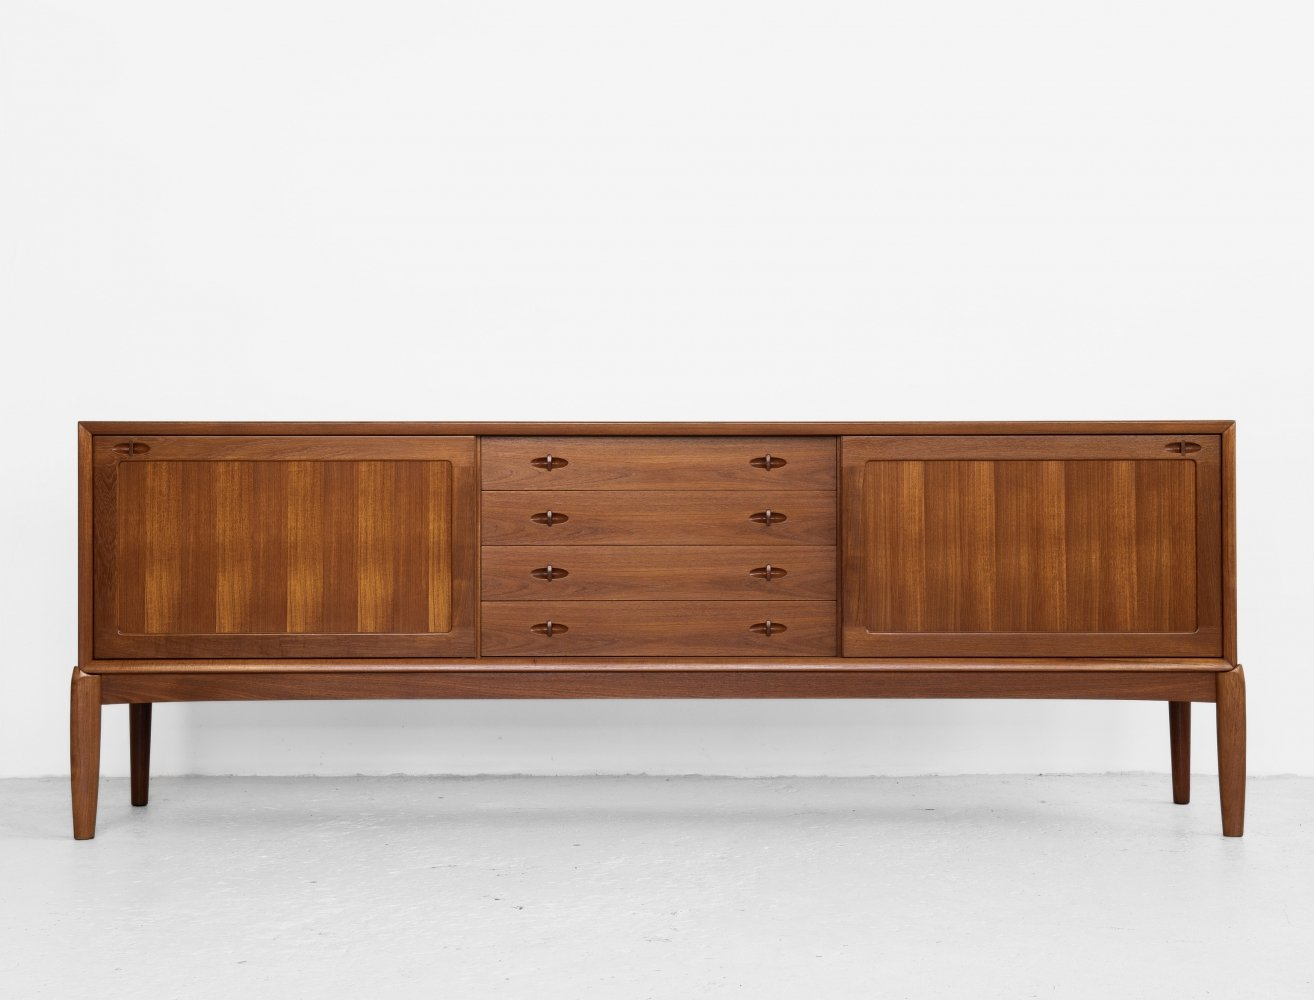 Midcentury Danish sideboard in teak by HW Klein for Bramin, 1960s